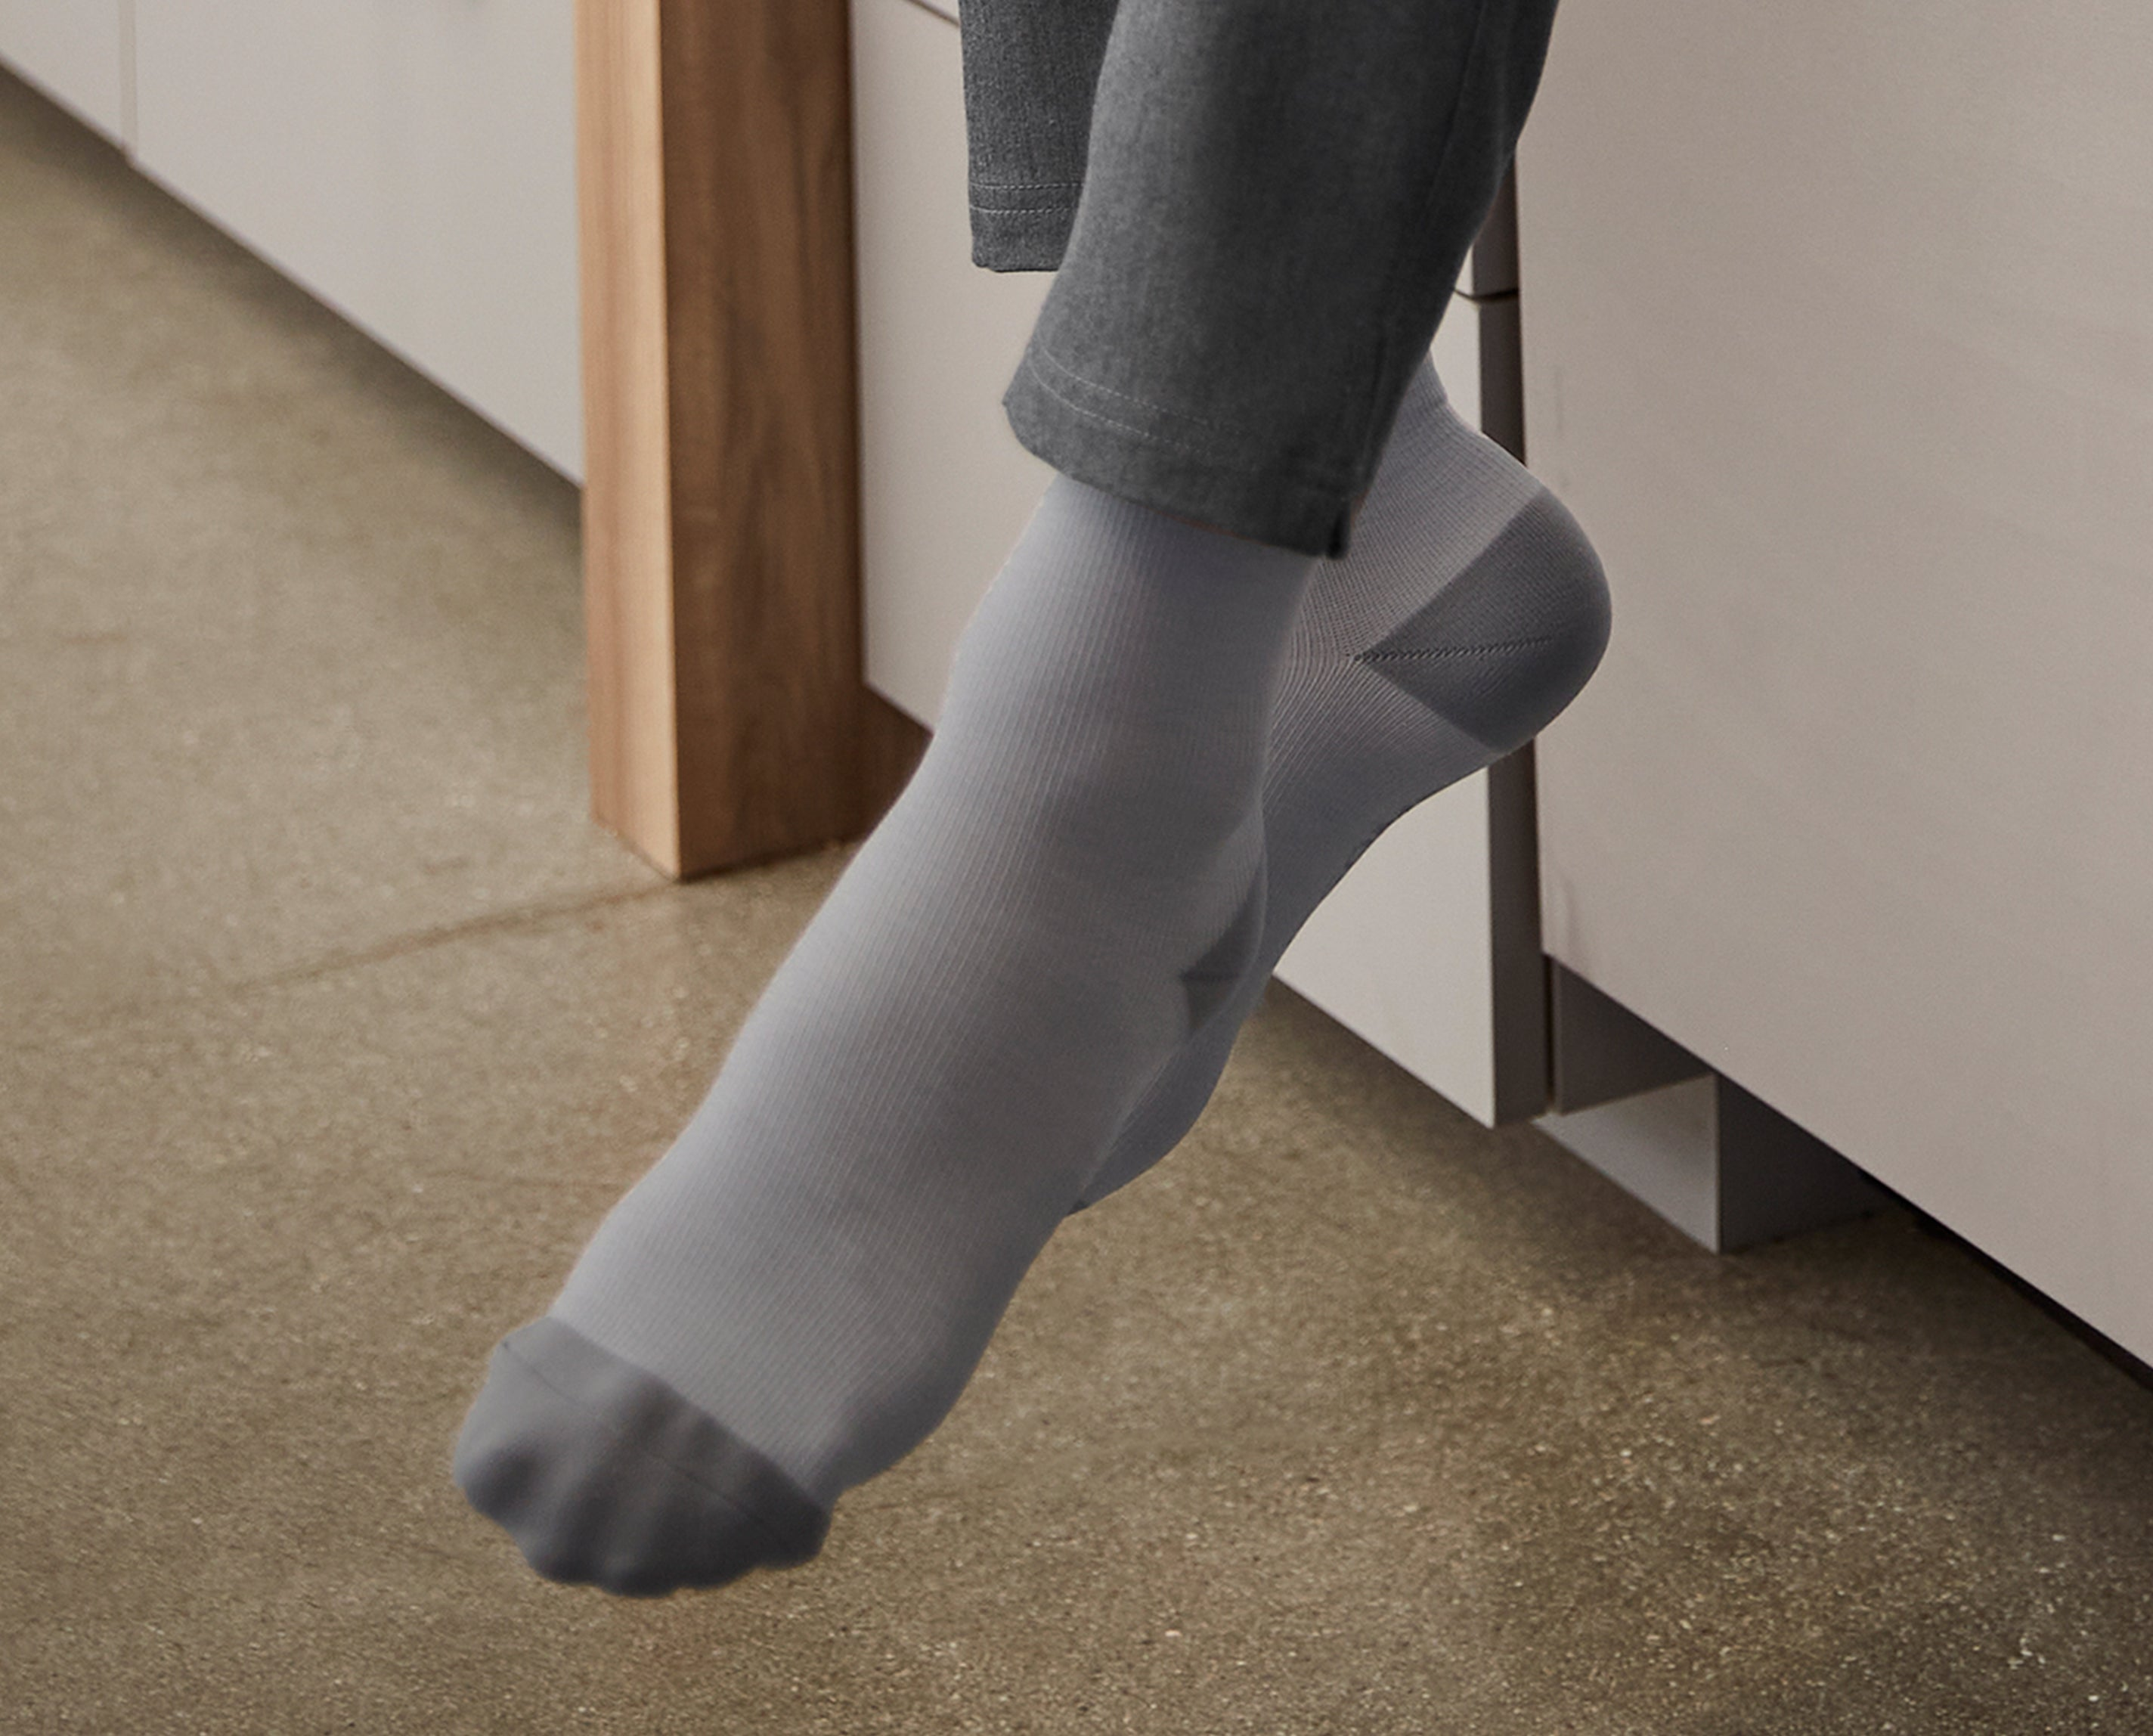 Mask, gloves, sanitizer. Your 2020 mantra comes to life and our functional Not Going Viral Compression Socks are ridiculously soft, breathable and help relieve your achy legs.